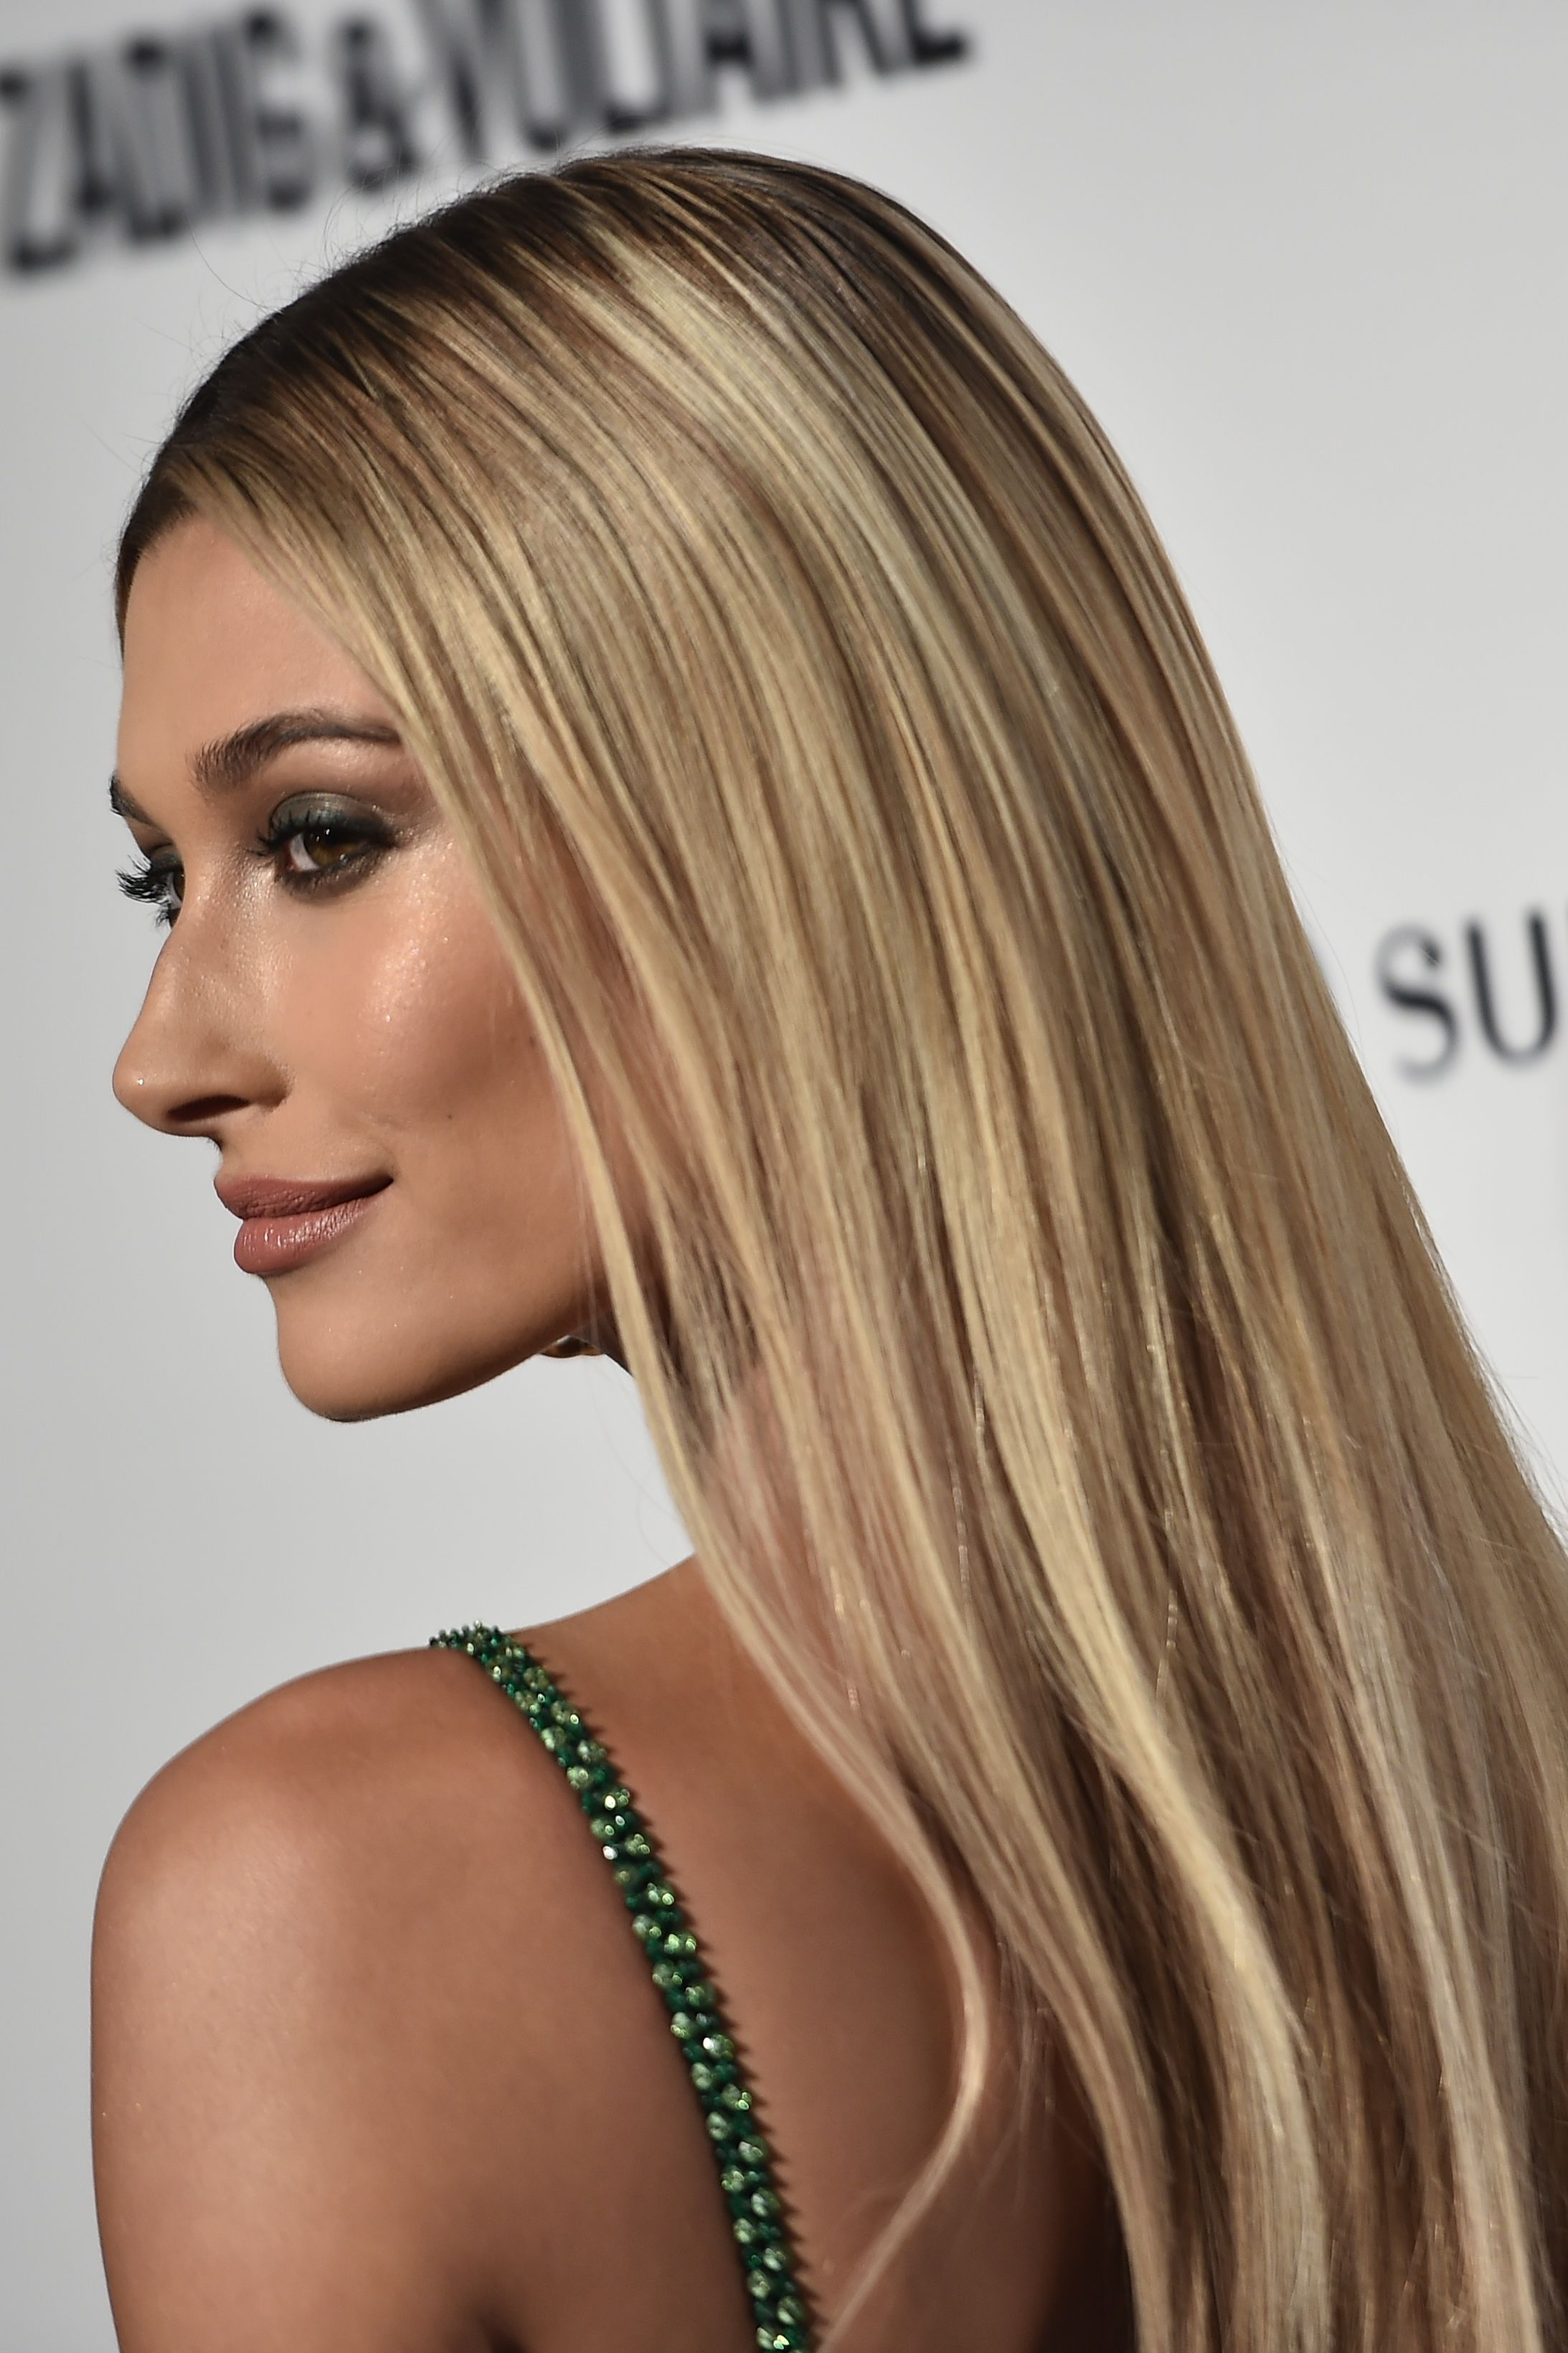 Hailey Baldwin Has a New Neck Tattoo, and Trust Us, You're